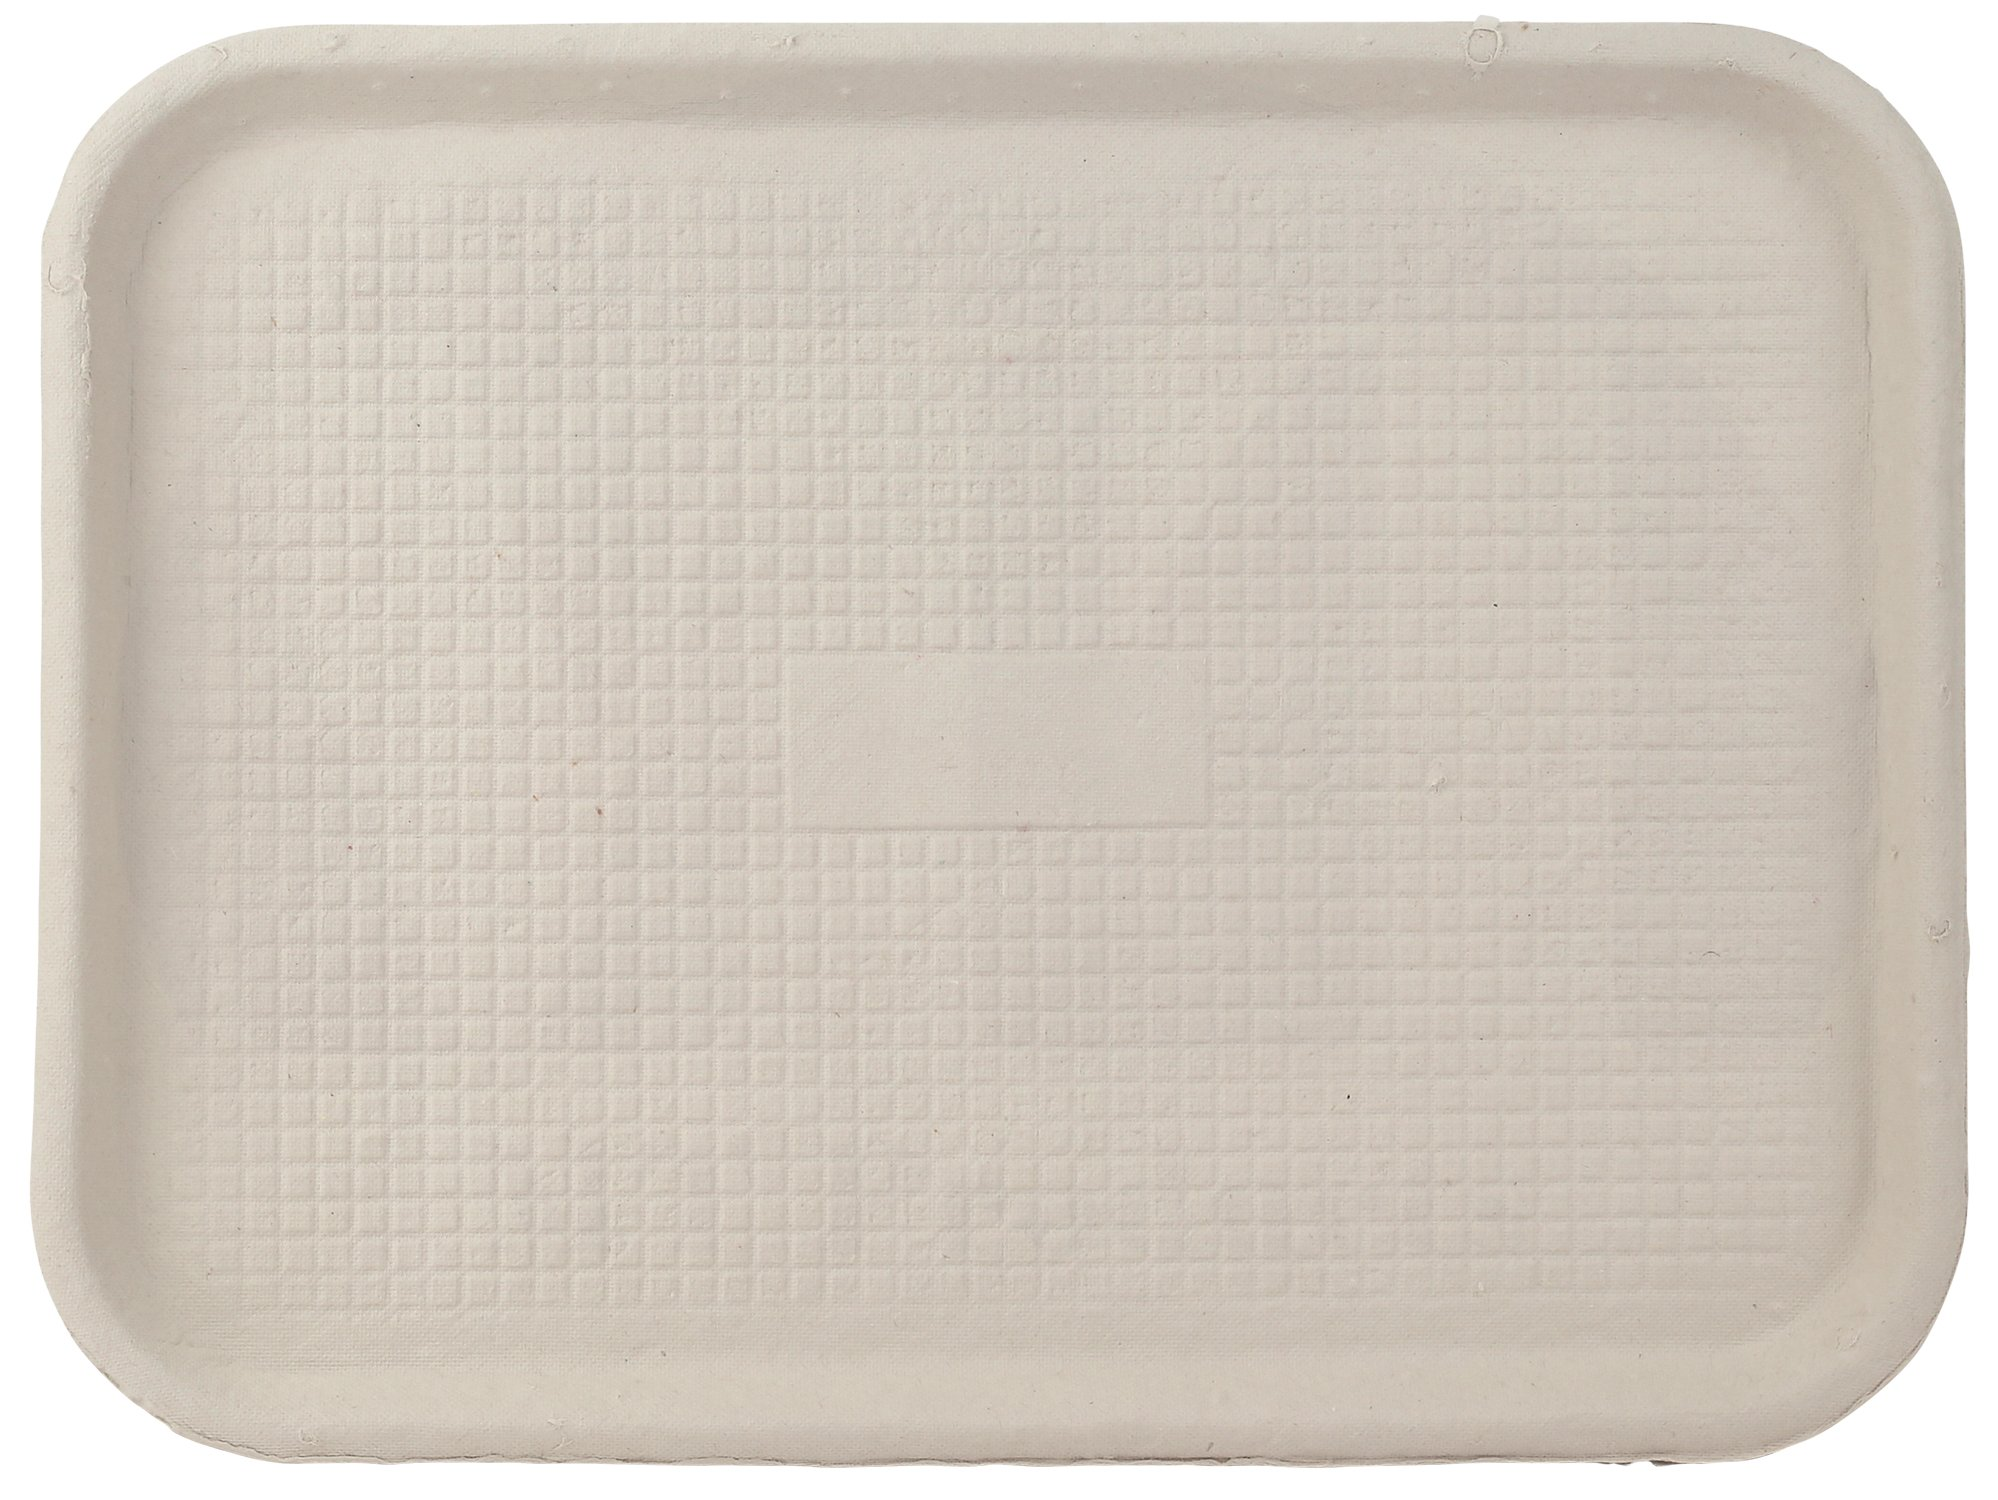 12'' x 16'' White Molded Fiber/Pulp Rectangular Food/Cafeteria Tray by MT Products - (15 Pieces)